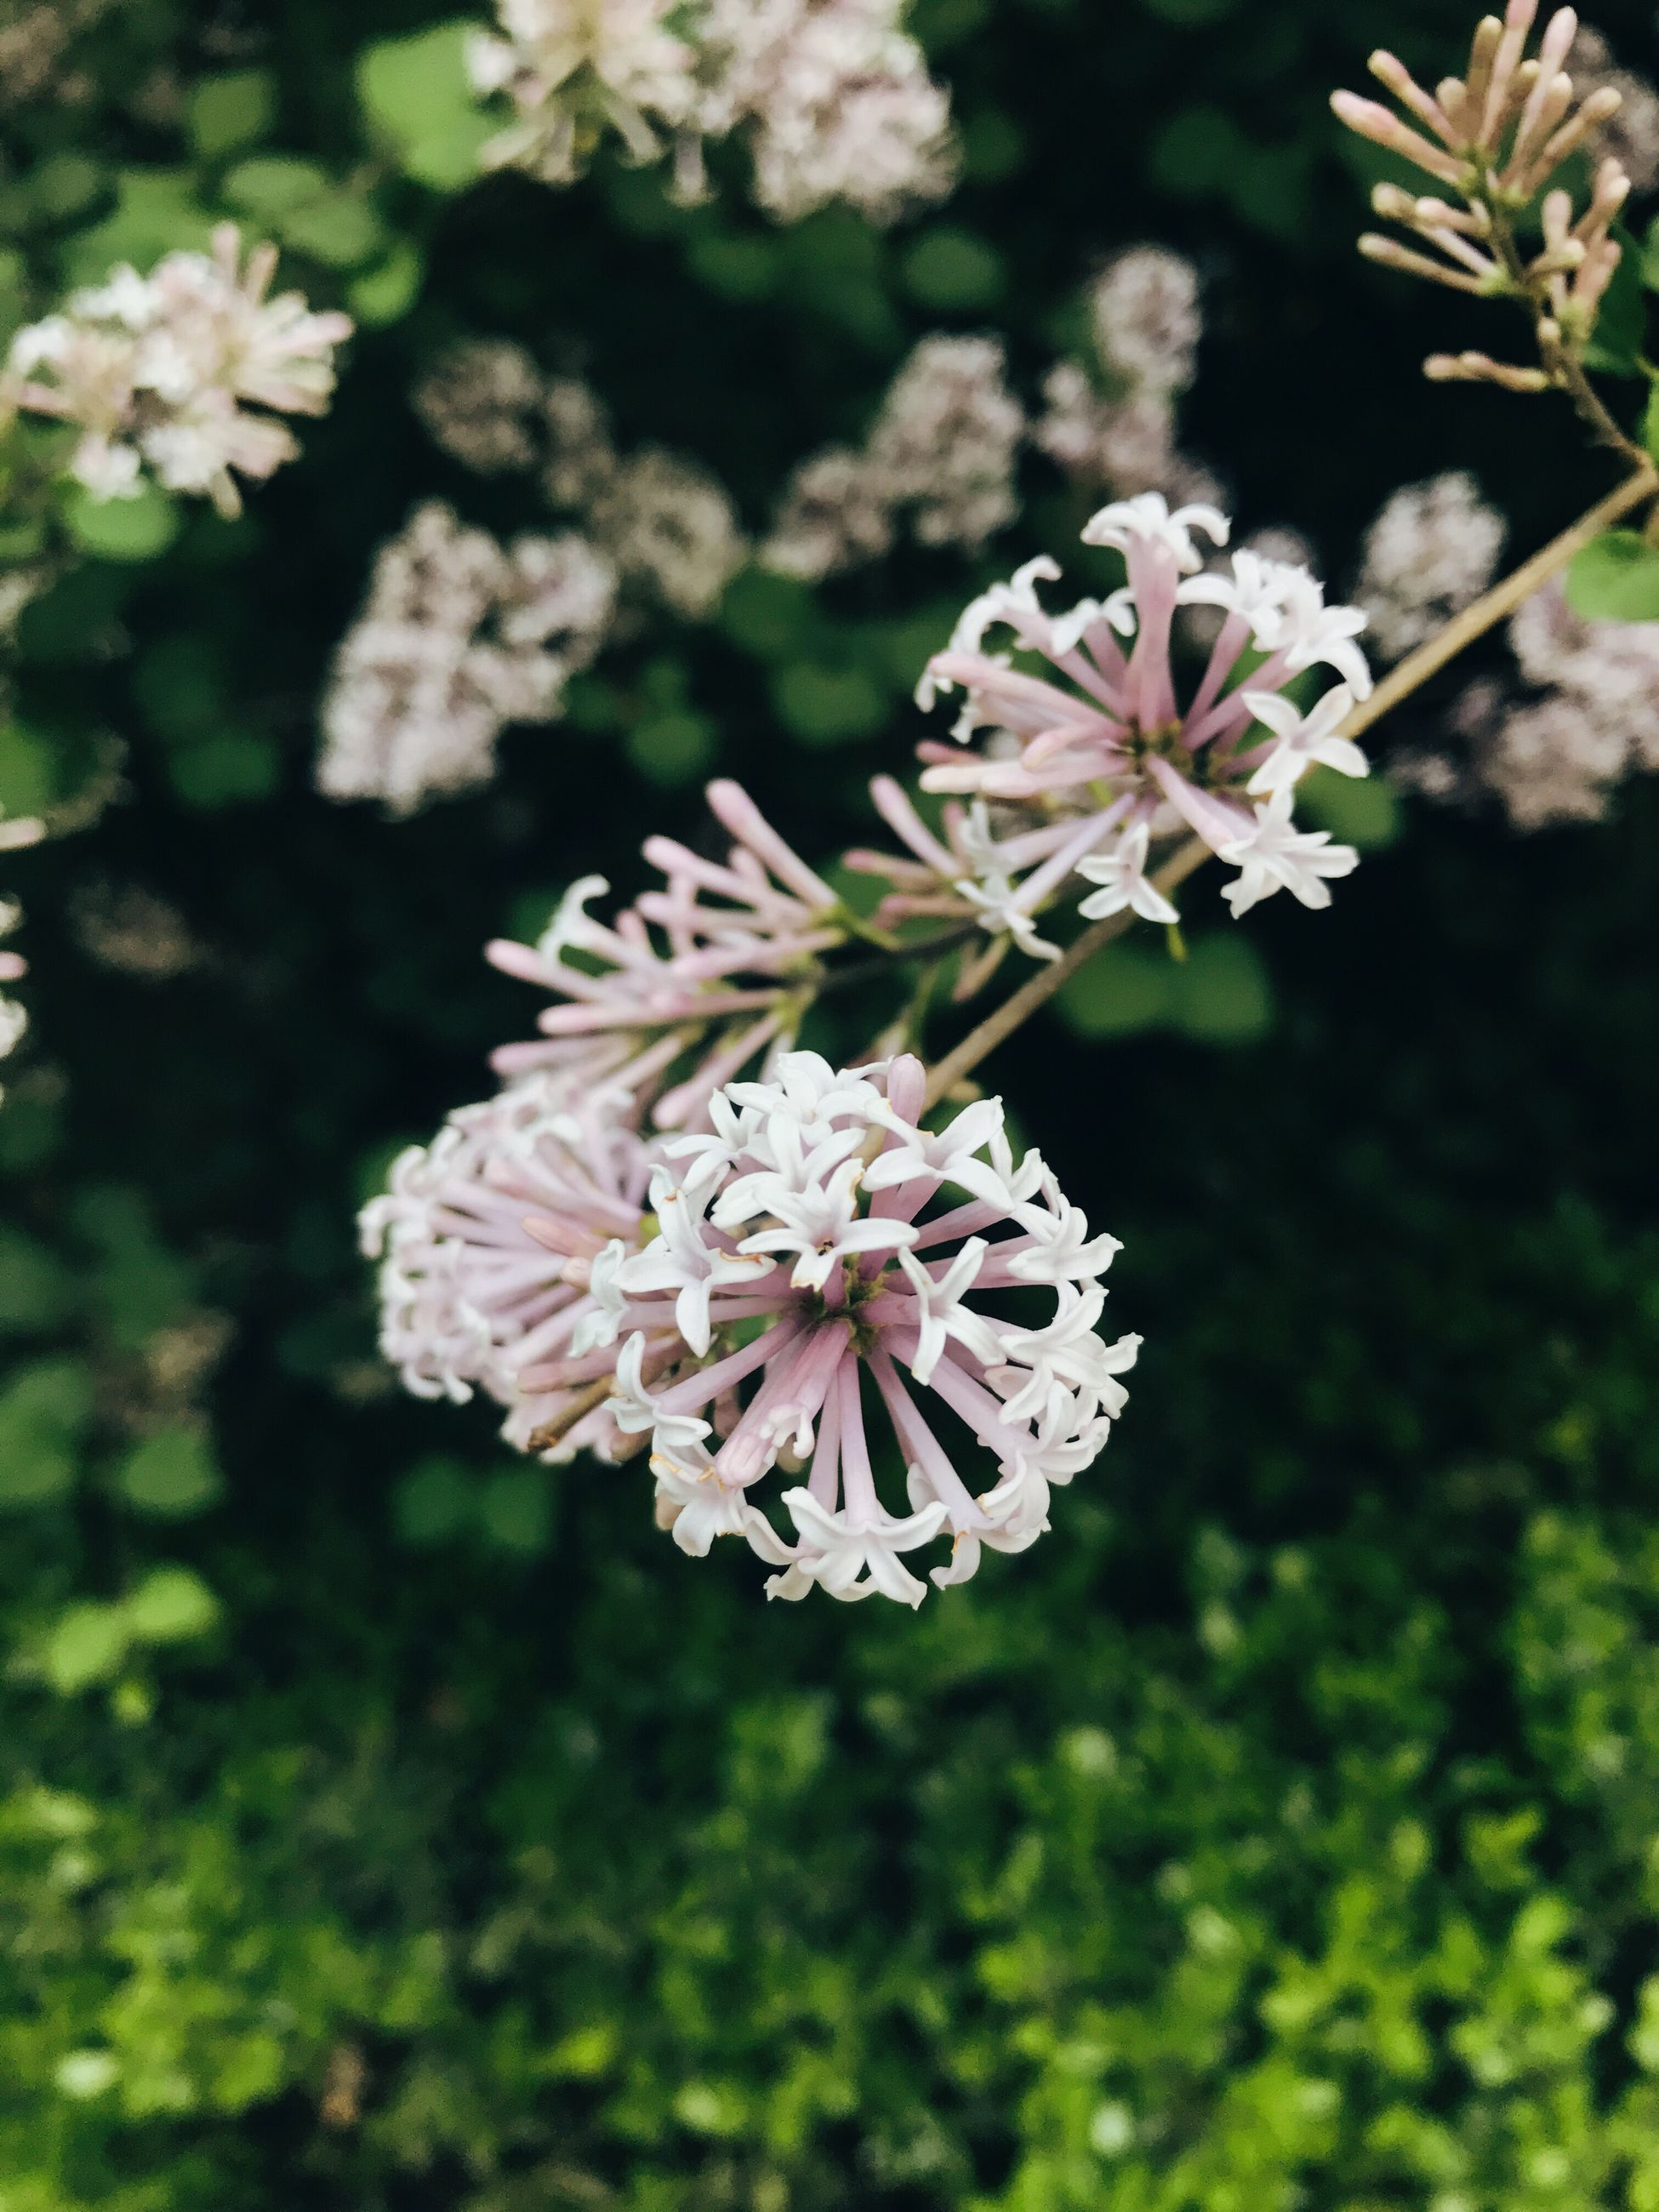 flower, nature, growth, fragility, beauty in nature, freshness, petal, flower head, close-up, blooming, no people, outdoors, day, plant, tree